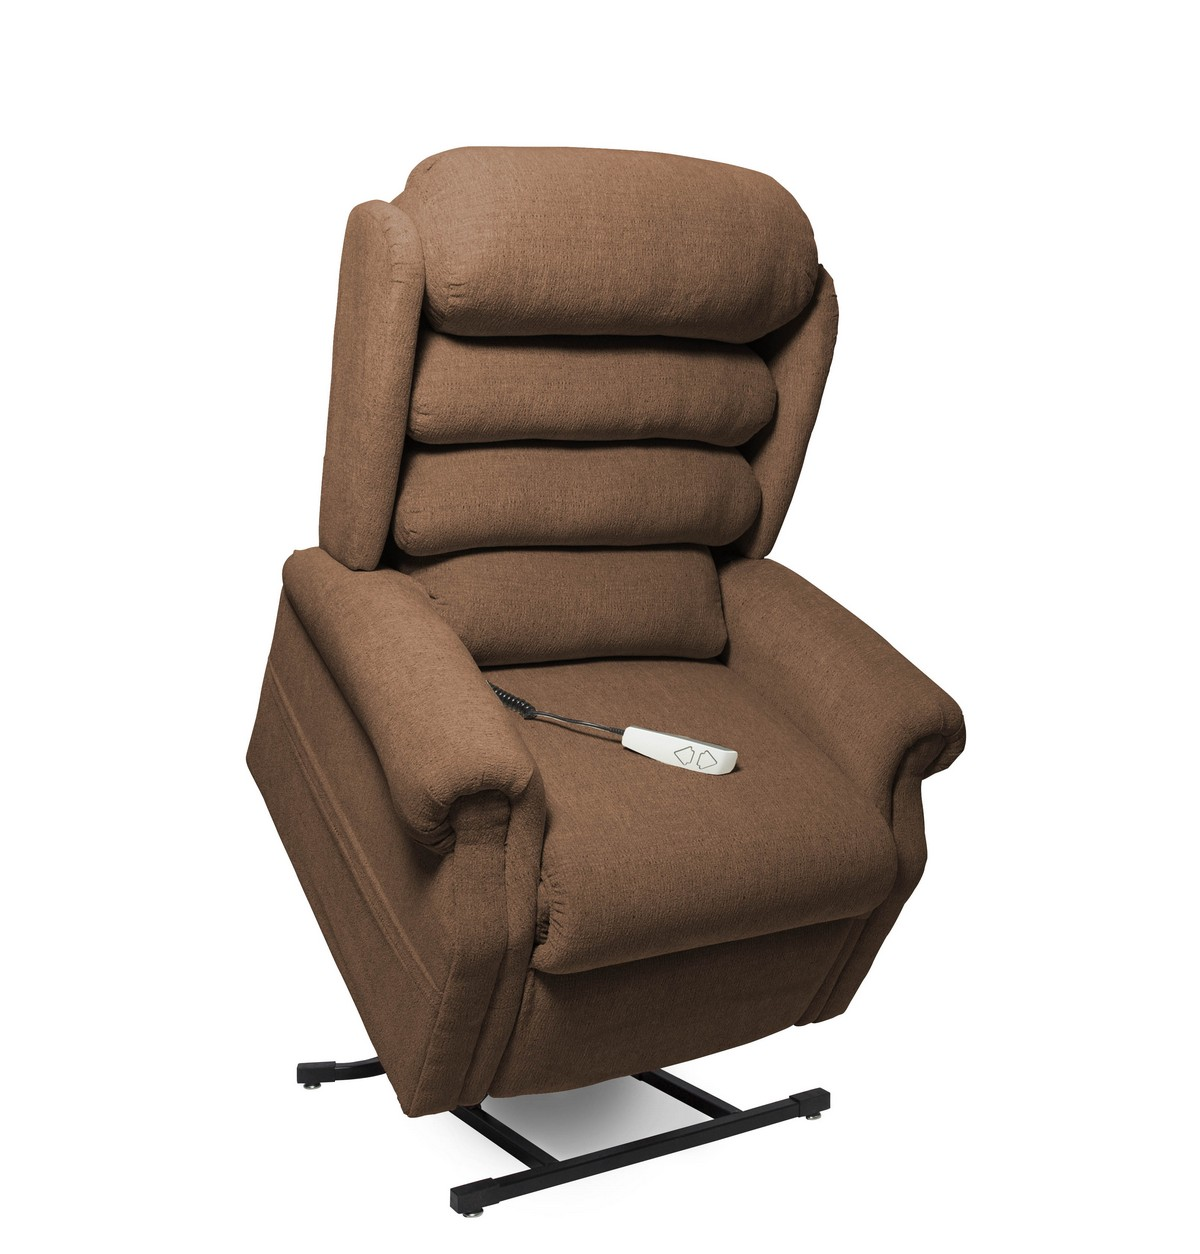 best heavy duty lift chairs benefits of zero gravity chair mega motion nm1950 stellar 3 position power chaise